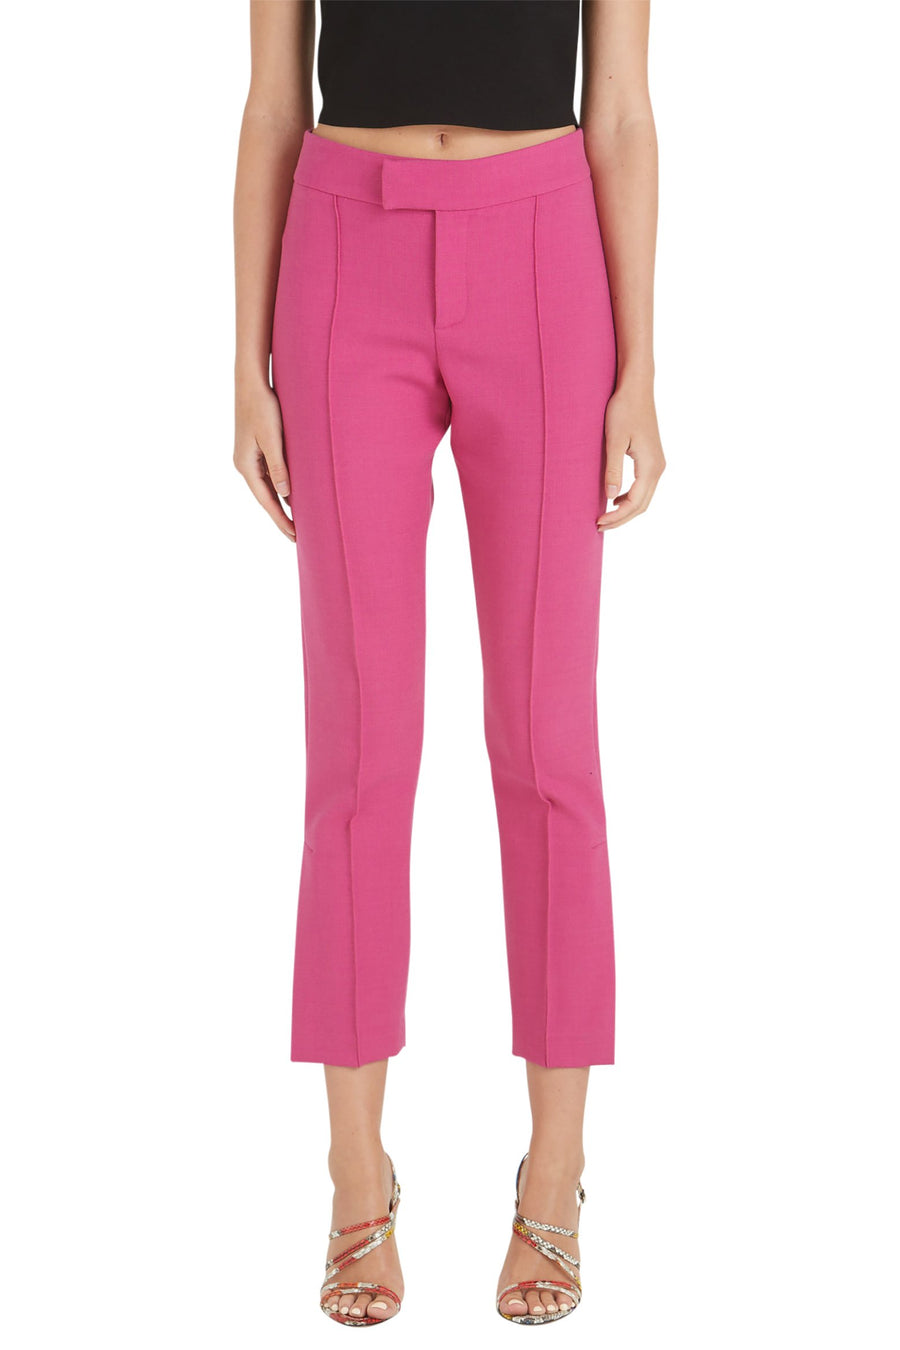 Smythe Stovepipe Pant in Violet from The New Trend